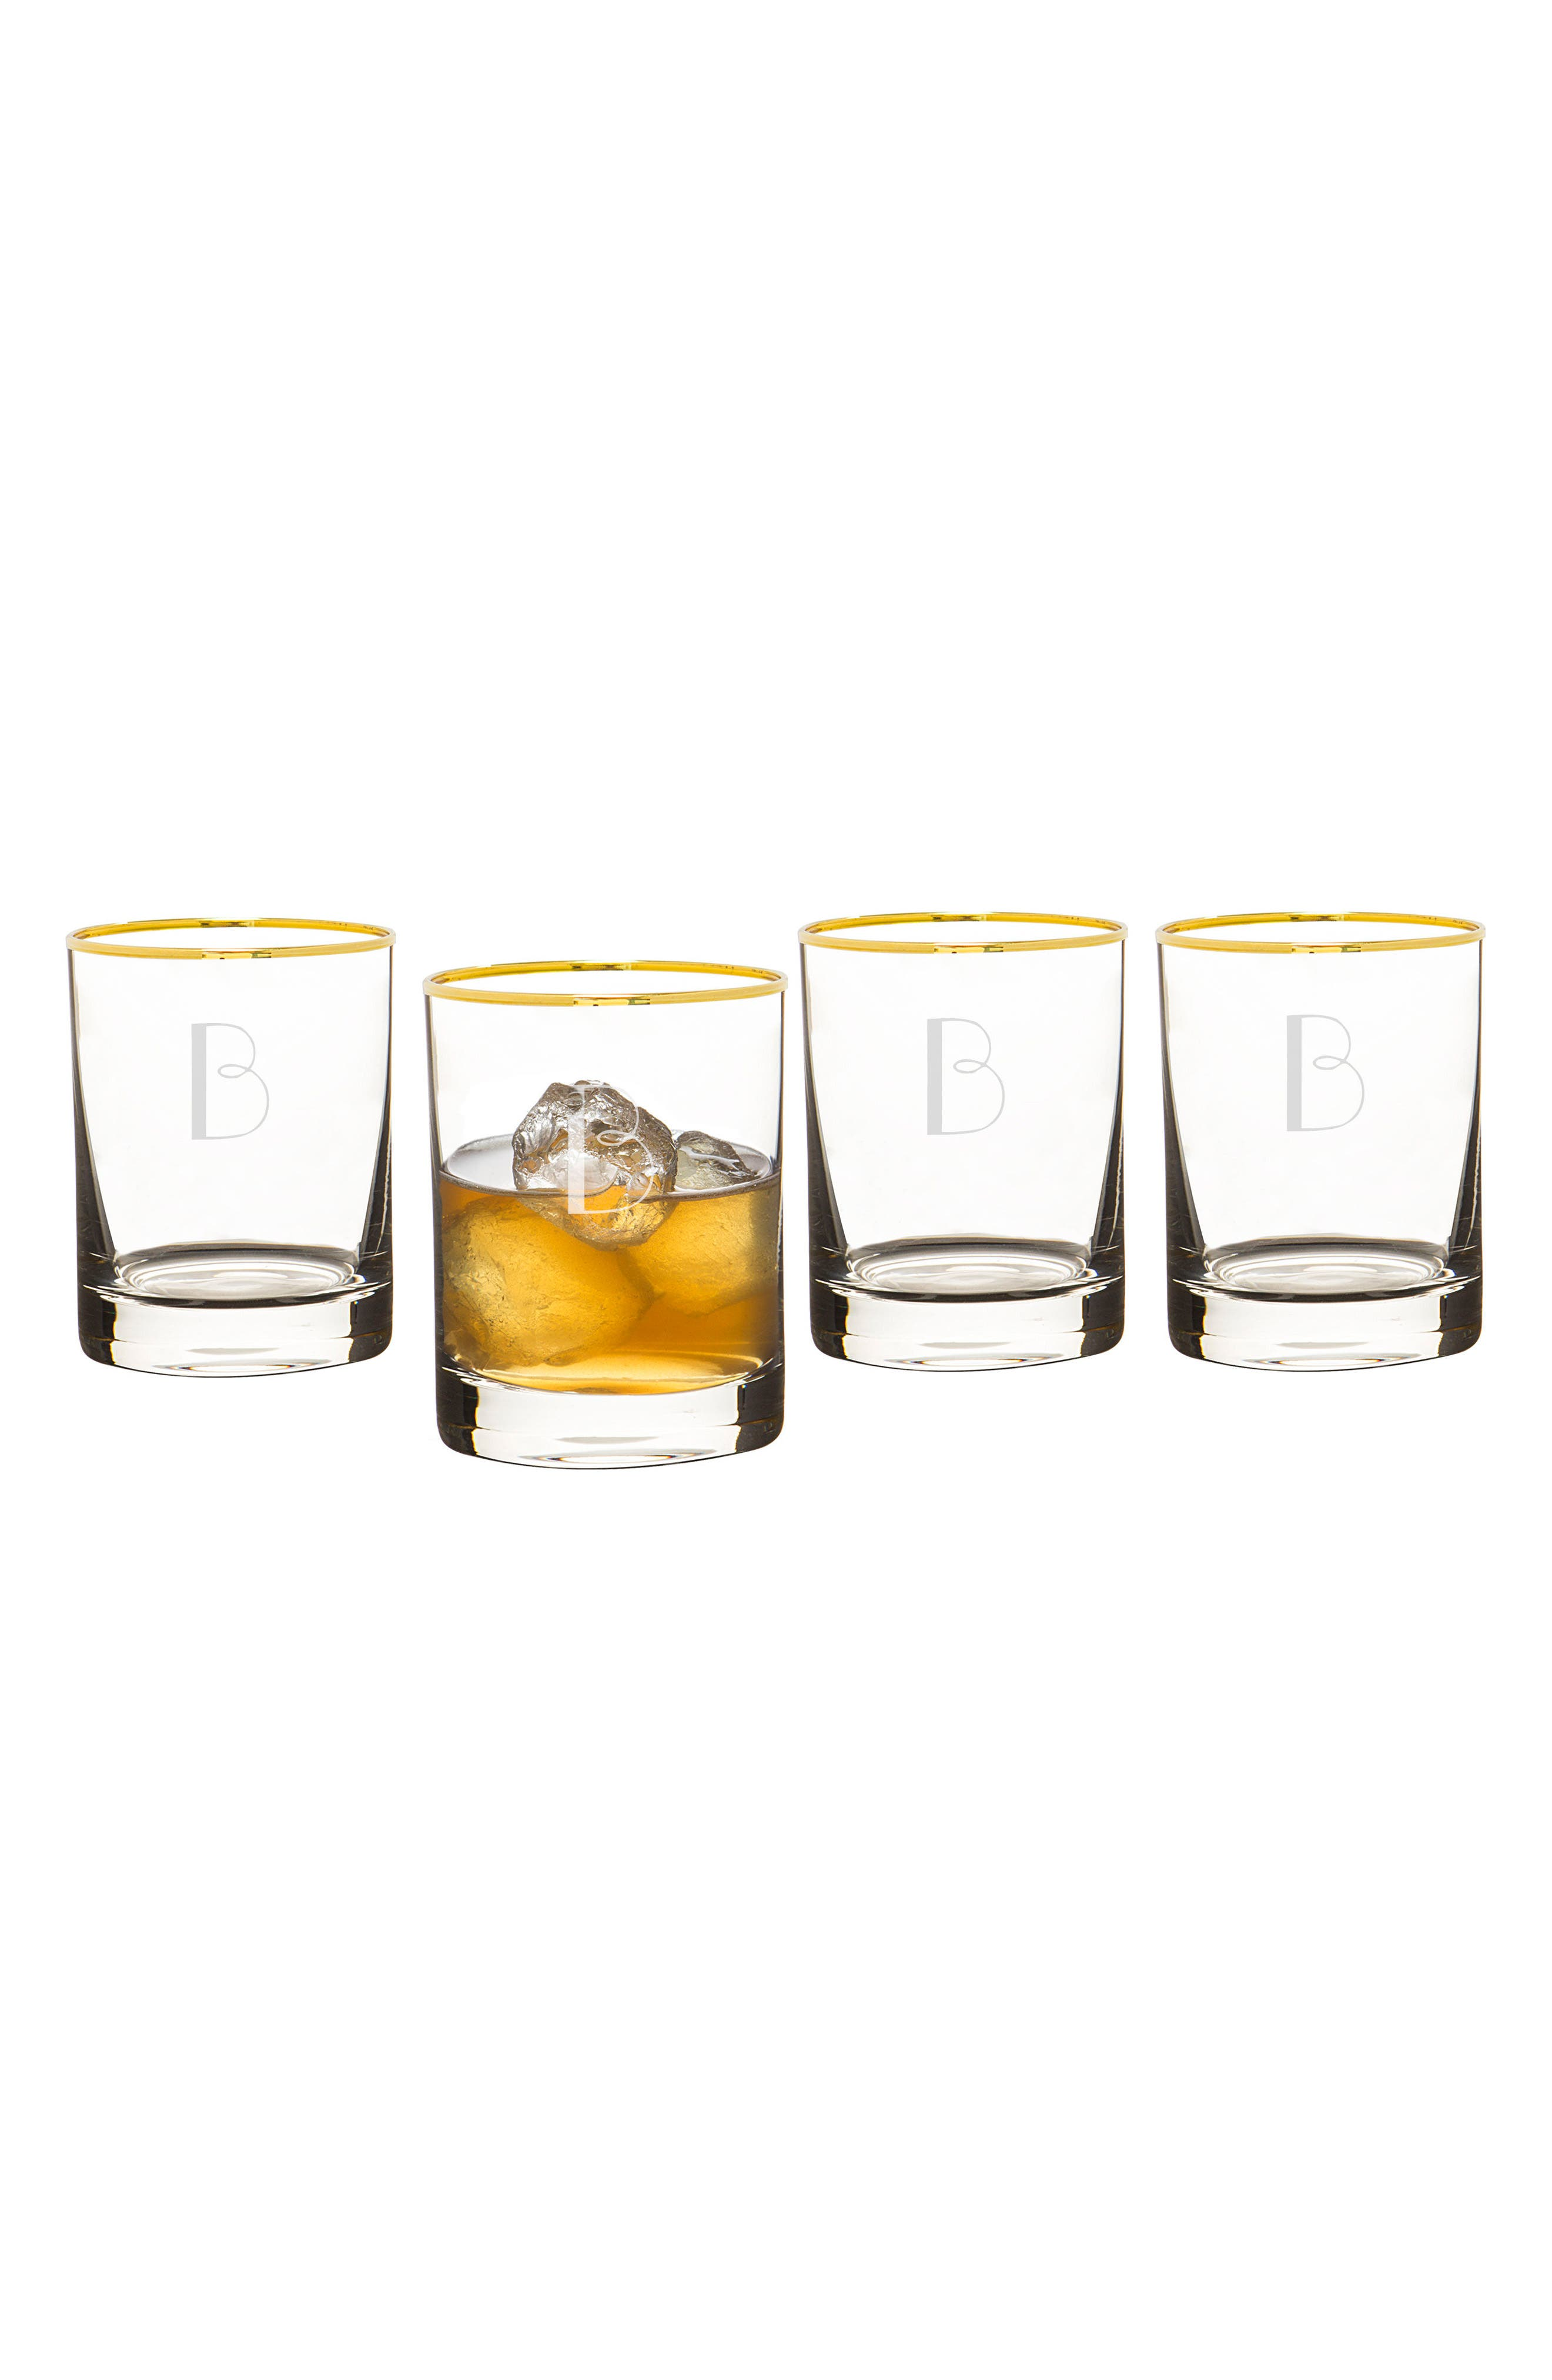 Monogram Set of 4 Double Old Fashioned Glasses,                             Main thumbnail 3, color,